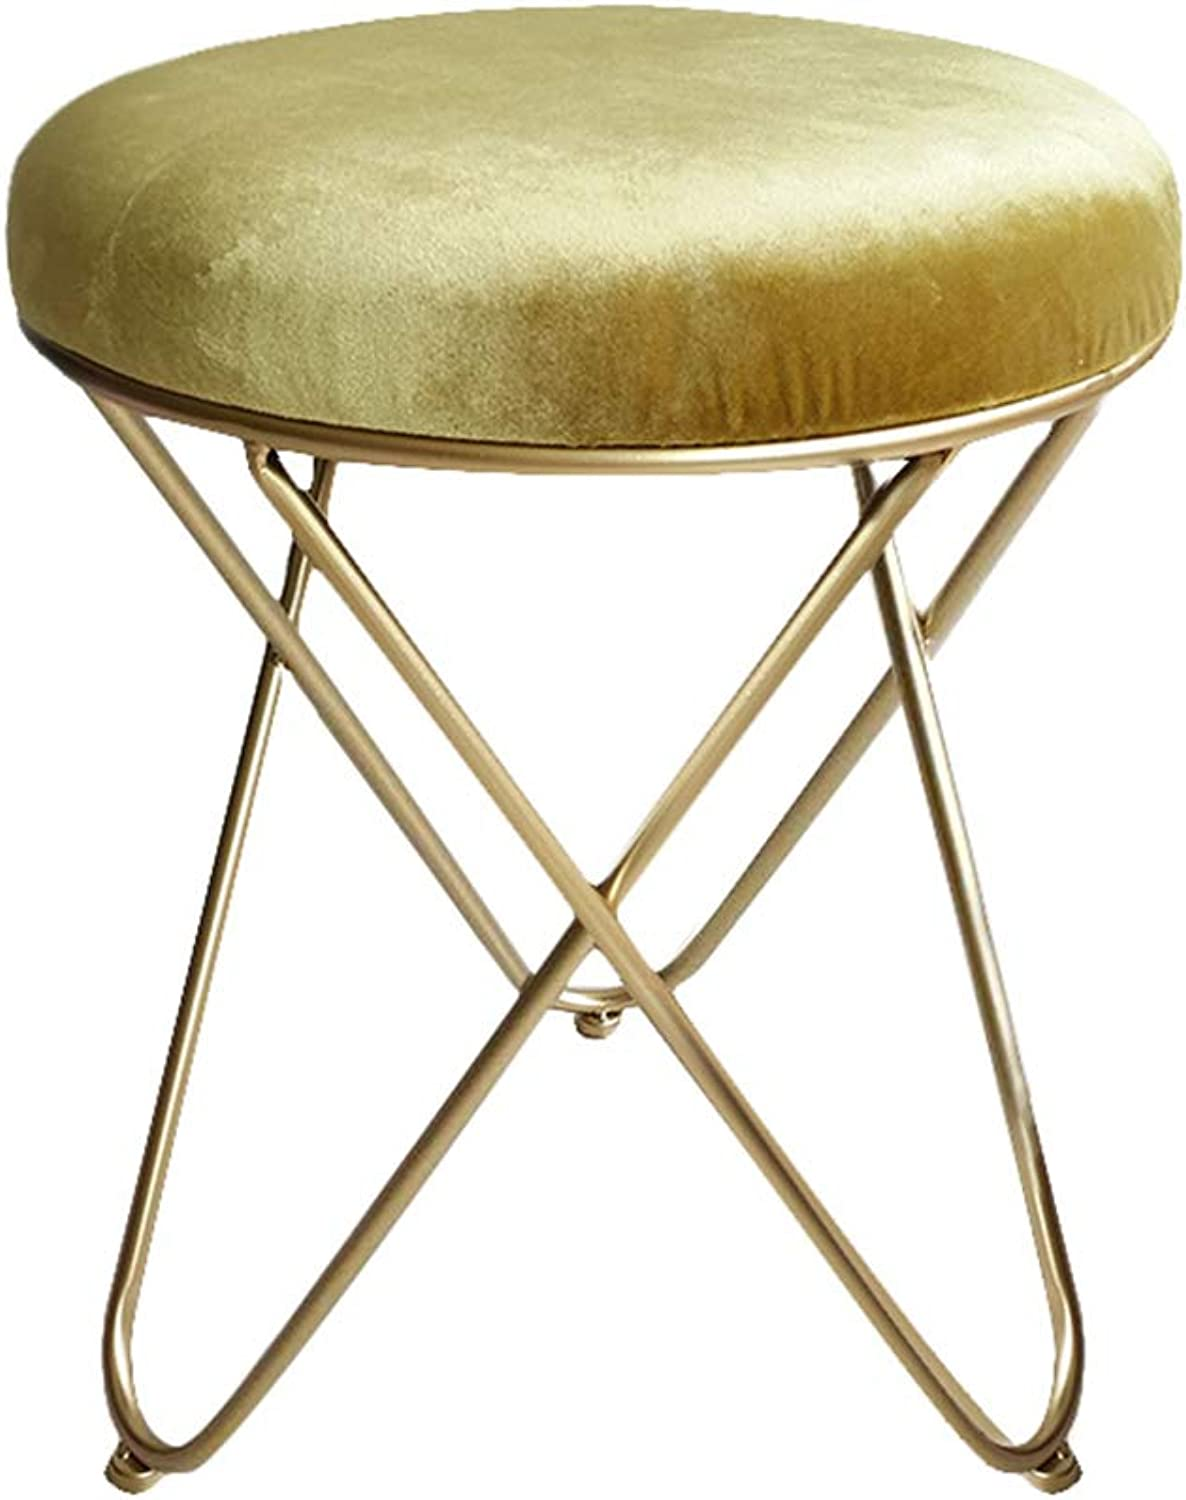 Dressing Table Stool, Makeup Stool, shoes Bench, Household Small Round Stool, -7 color Optional